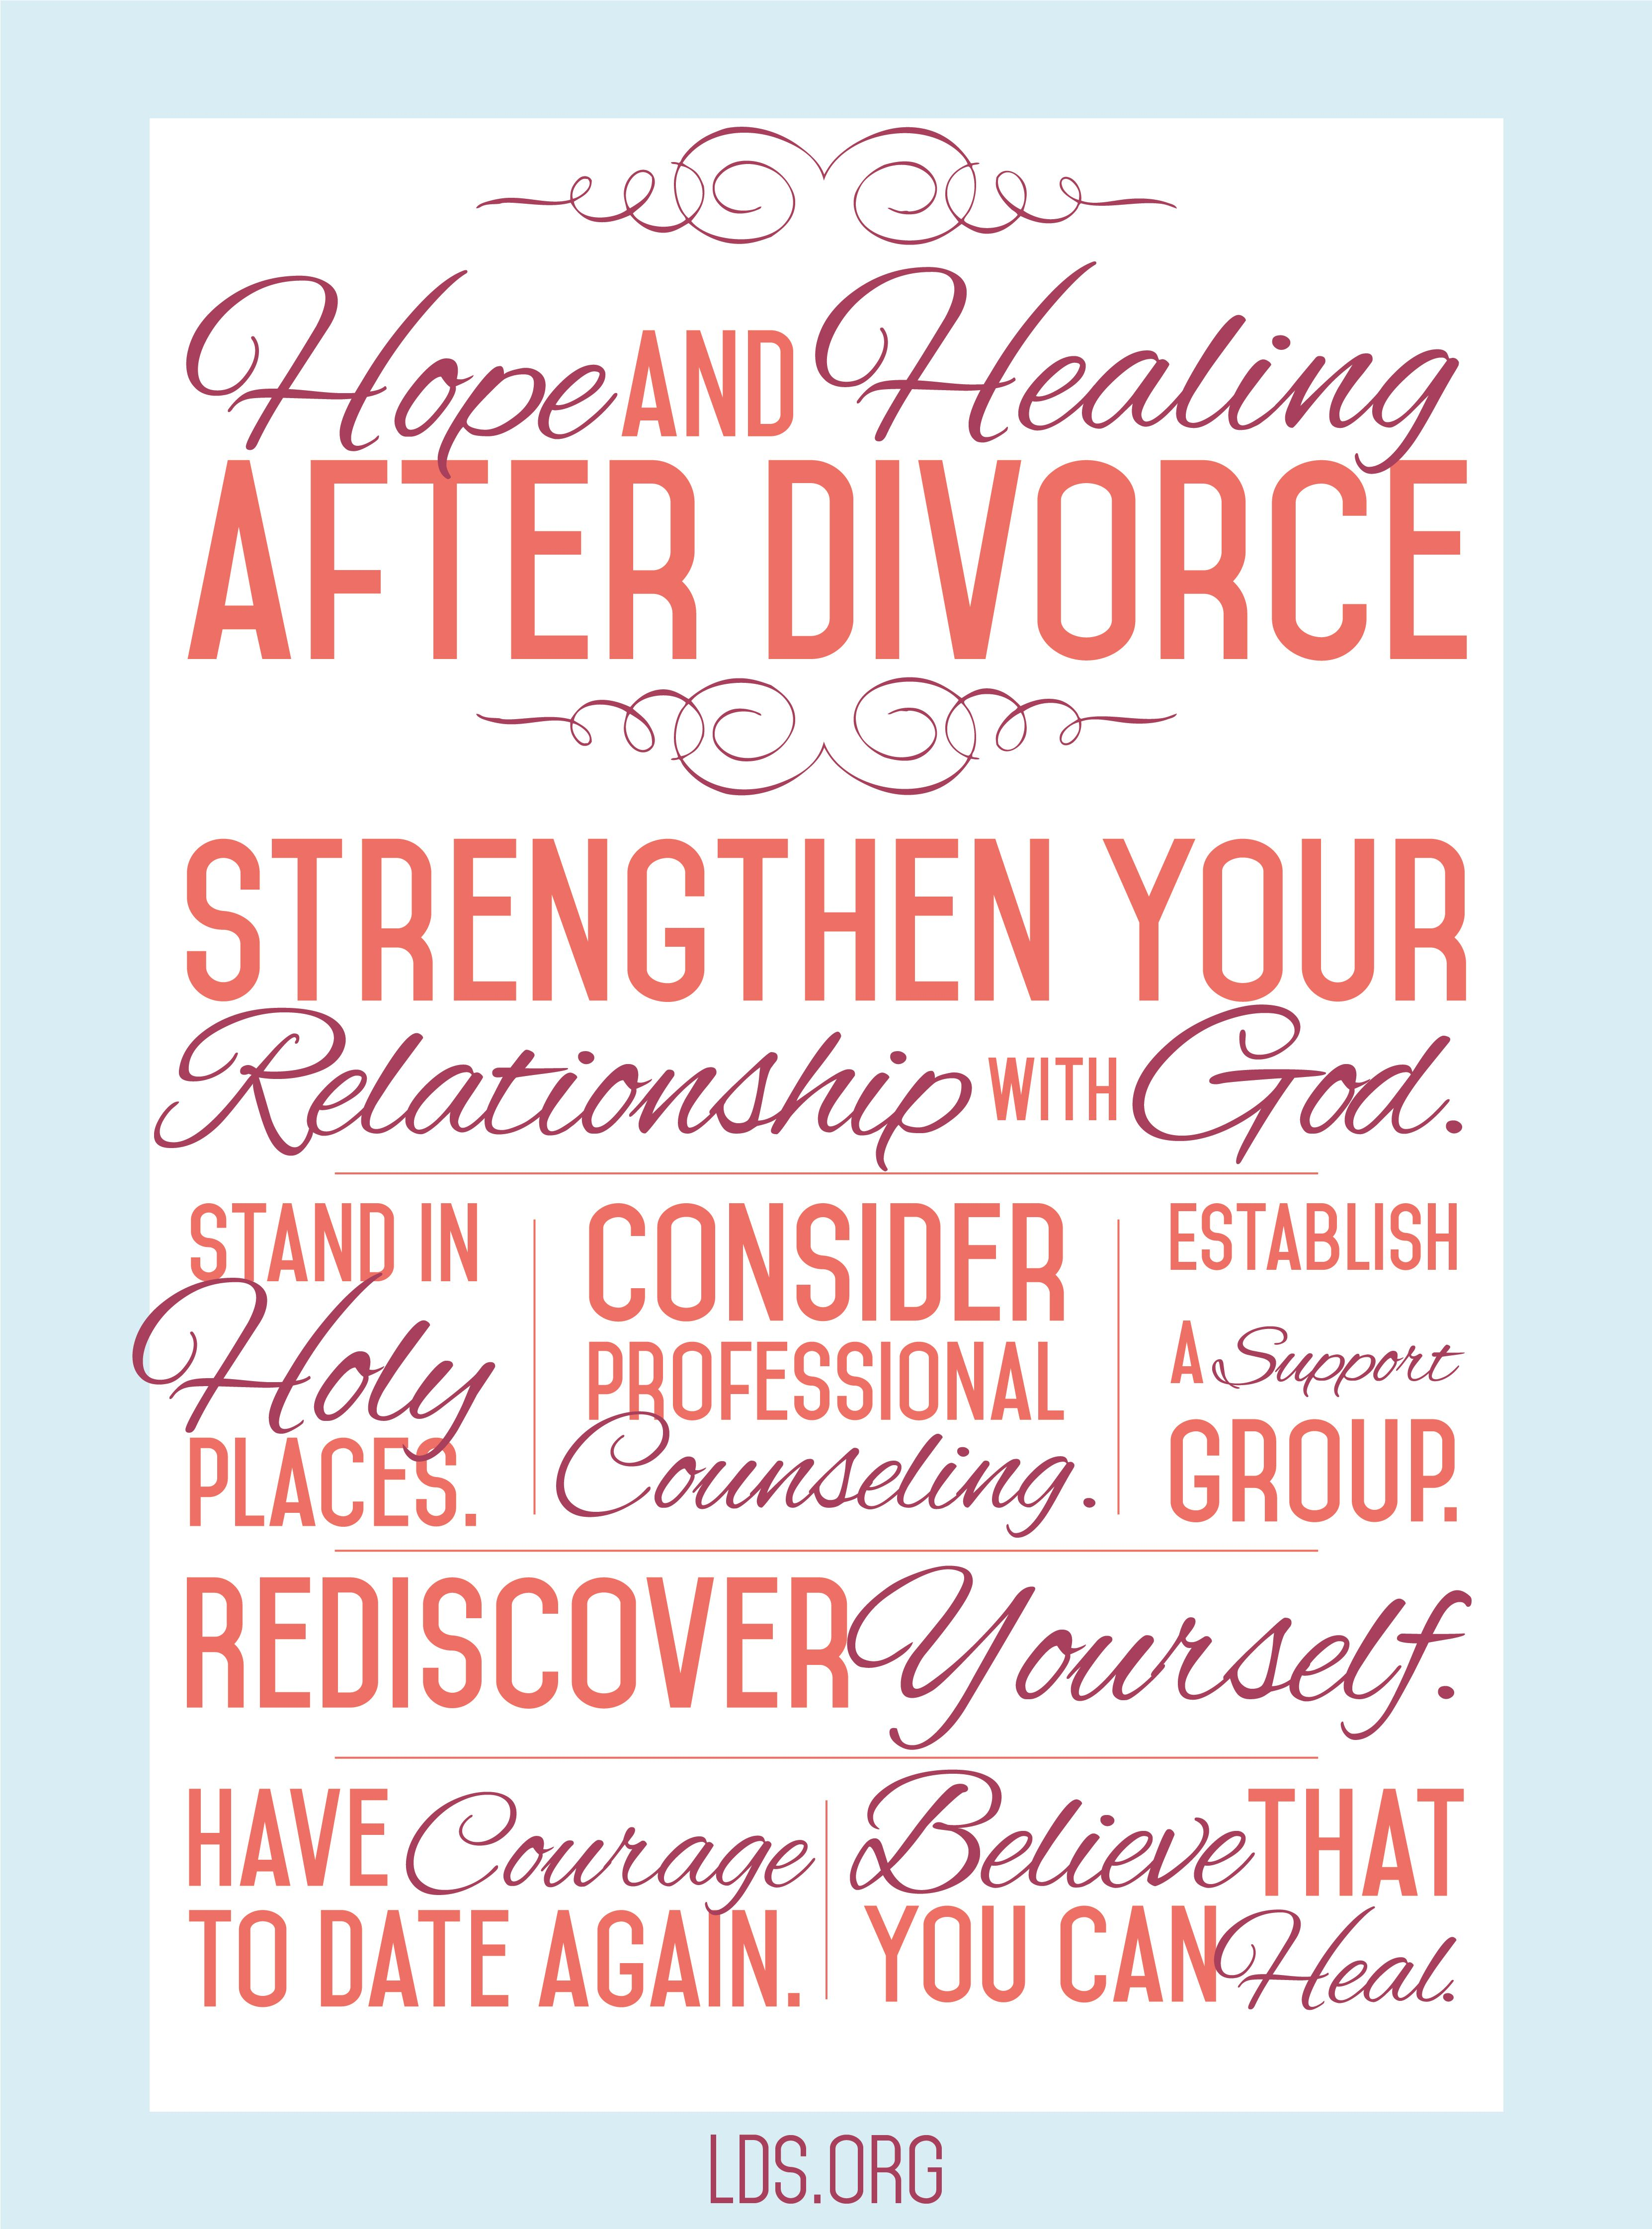 Life After Divorce Quotes 7 Ways You Can Find Hope And Healing After Divorcei Have Limited